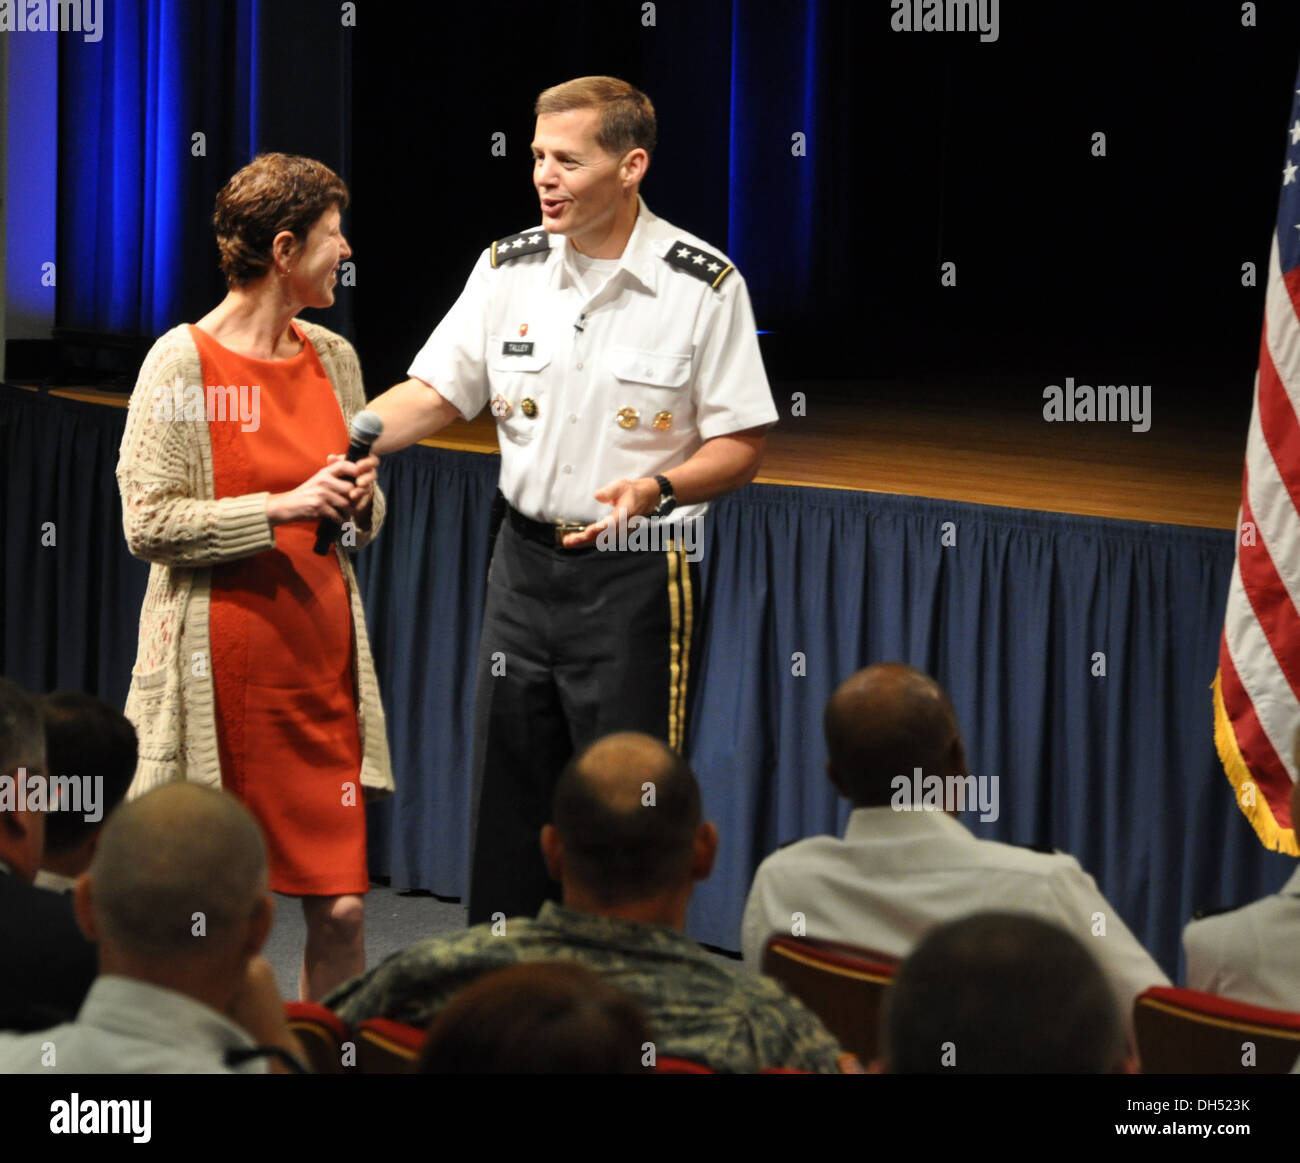 Lt. Gen. Jeffrey Talley, Chief of Army Reserve and Commanding General of US Army Reserve Command, passes the microphone to his wife Linda during a town hall meeting today at the Pentagon. Mrs. Talley urged the audience to recognize the families and friend - Stock Image